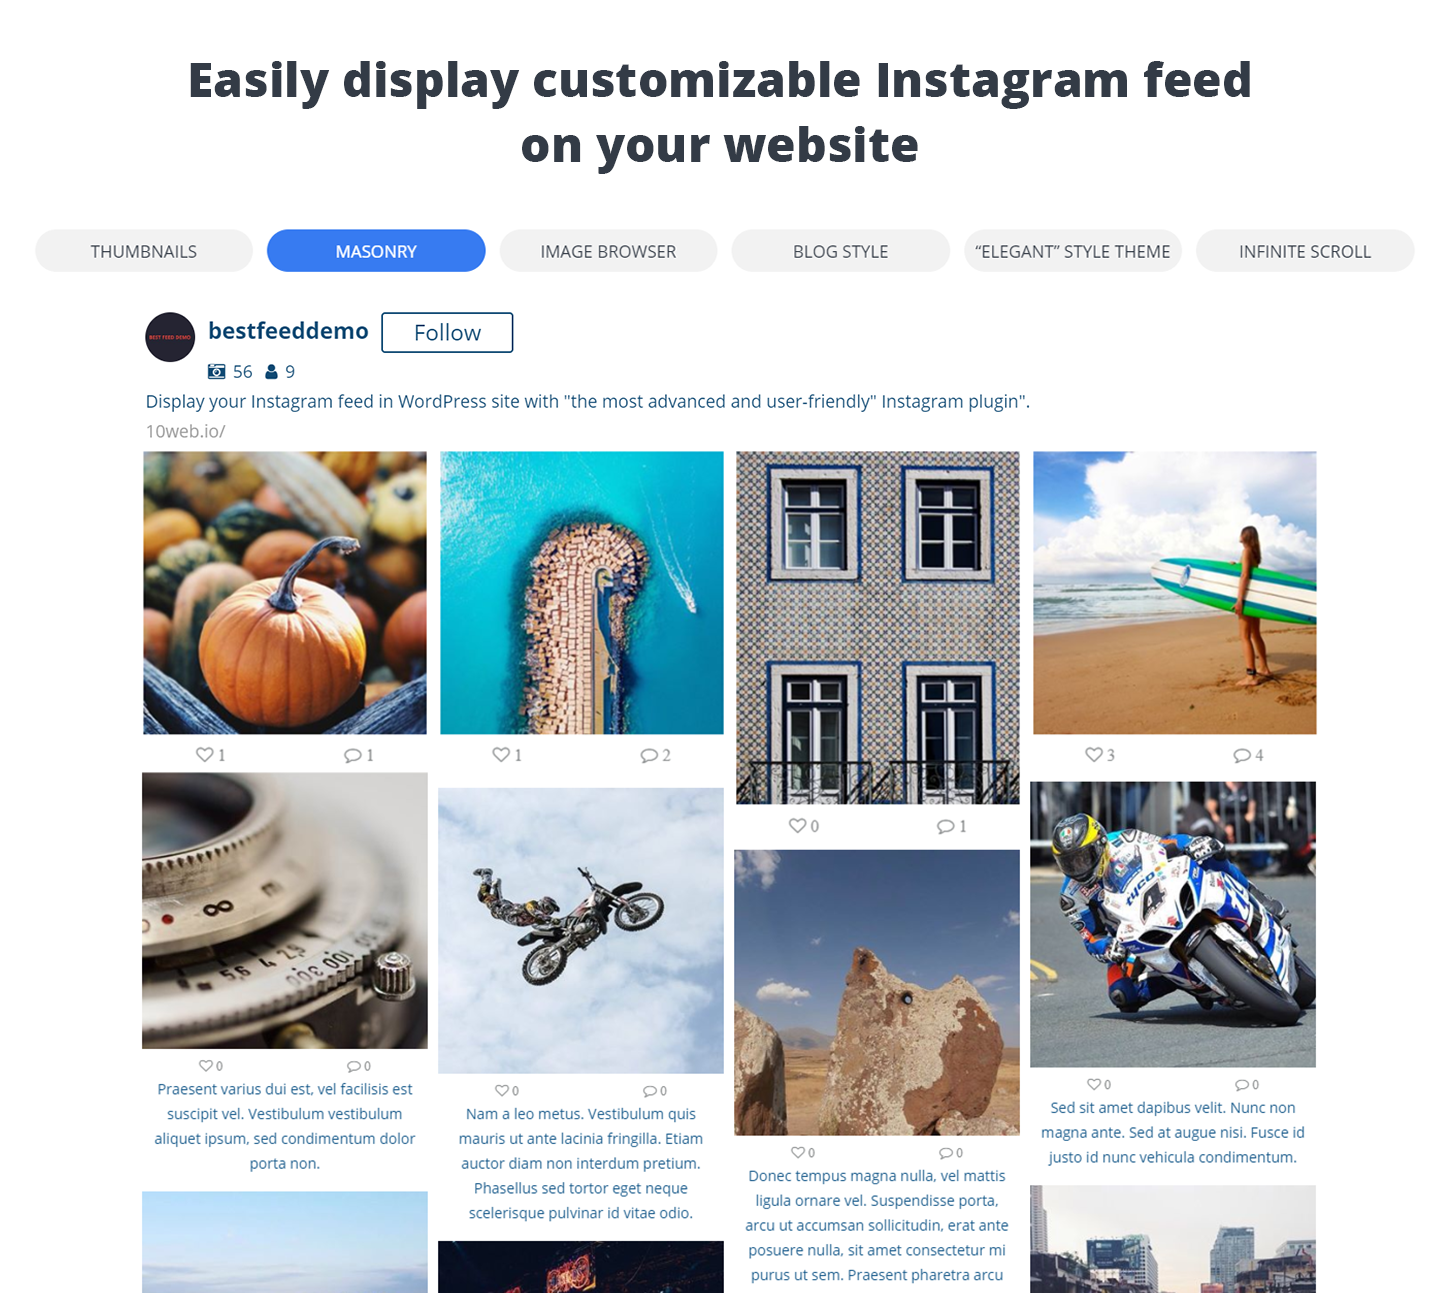 WordPress 10Web Social Photo Feed for Instagram - Image browser layout